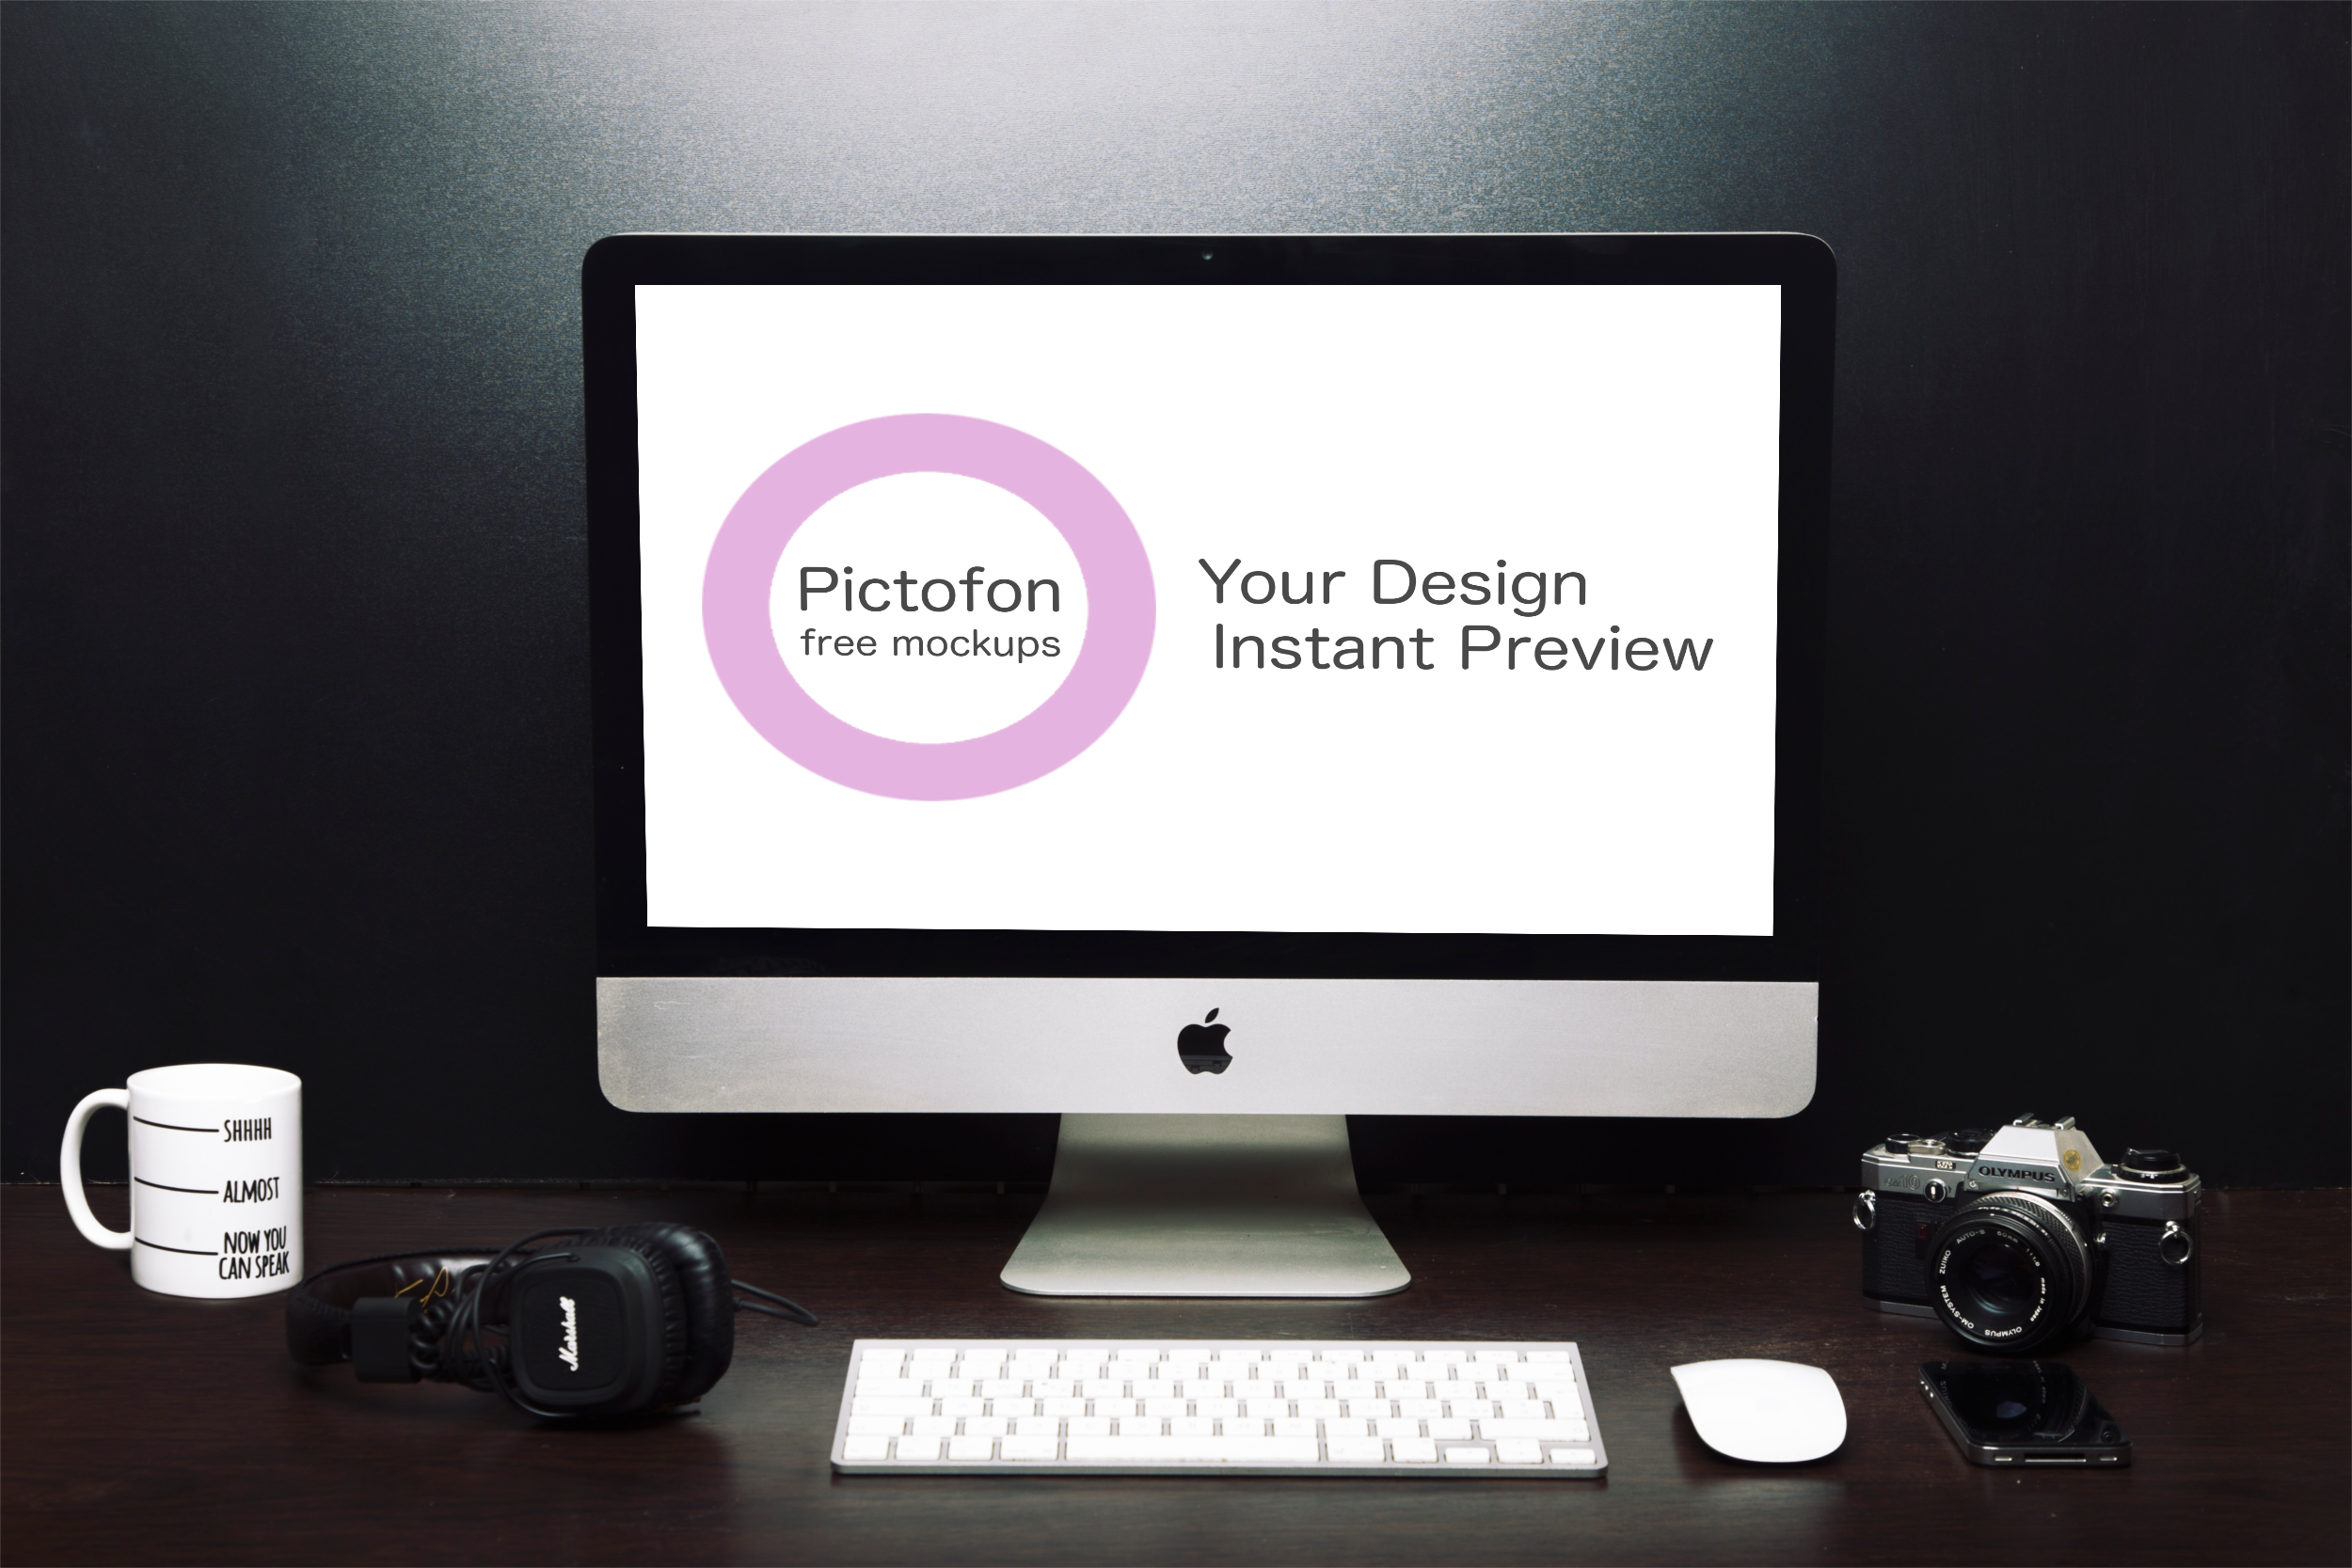 New iMac mockup with instant preview of your design on